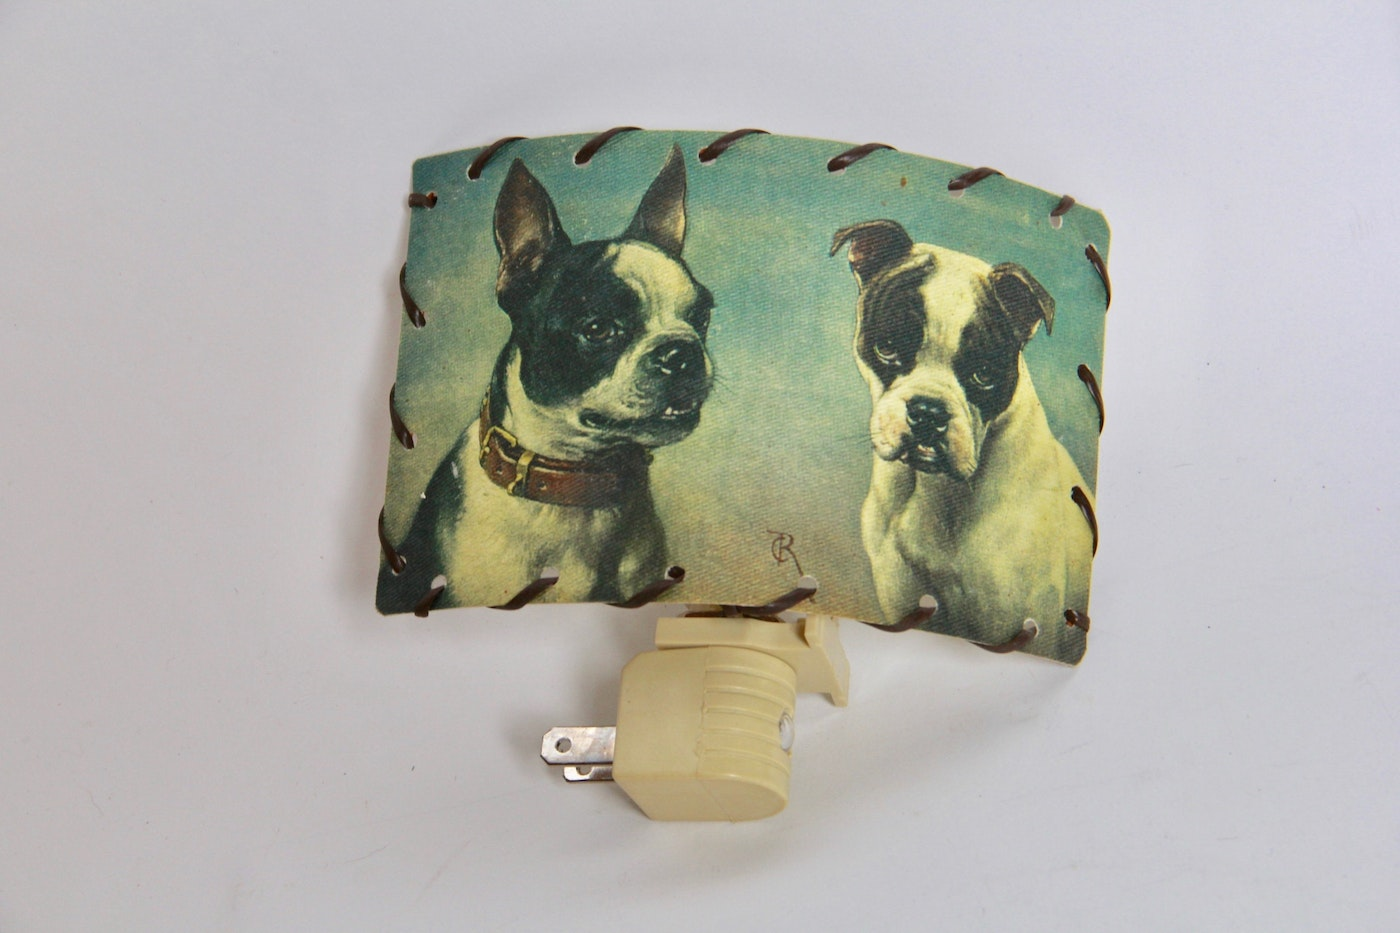 Boston terrier and other dog related games and decor ebth for Dog related home decor